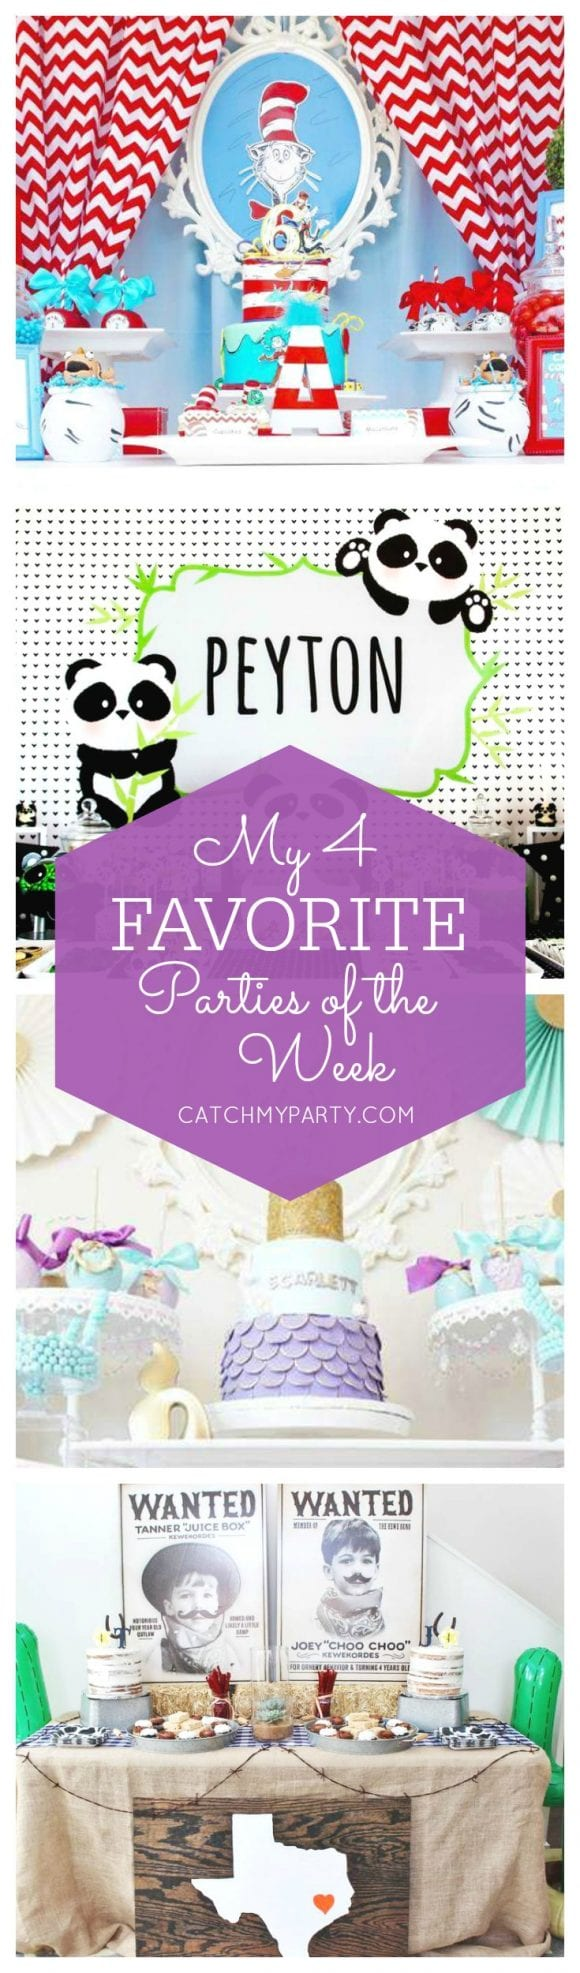 My favorite parties this week include a Dr. Seuss Birthday Party, a panda birthday party, a mermaid 1st birthday party and a western rodeo party for twins! | Catchmyparty.com